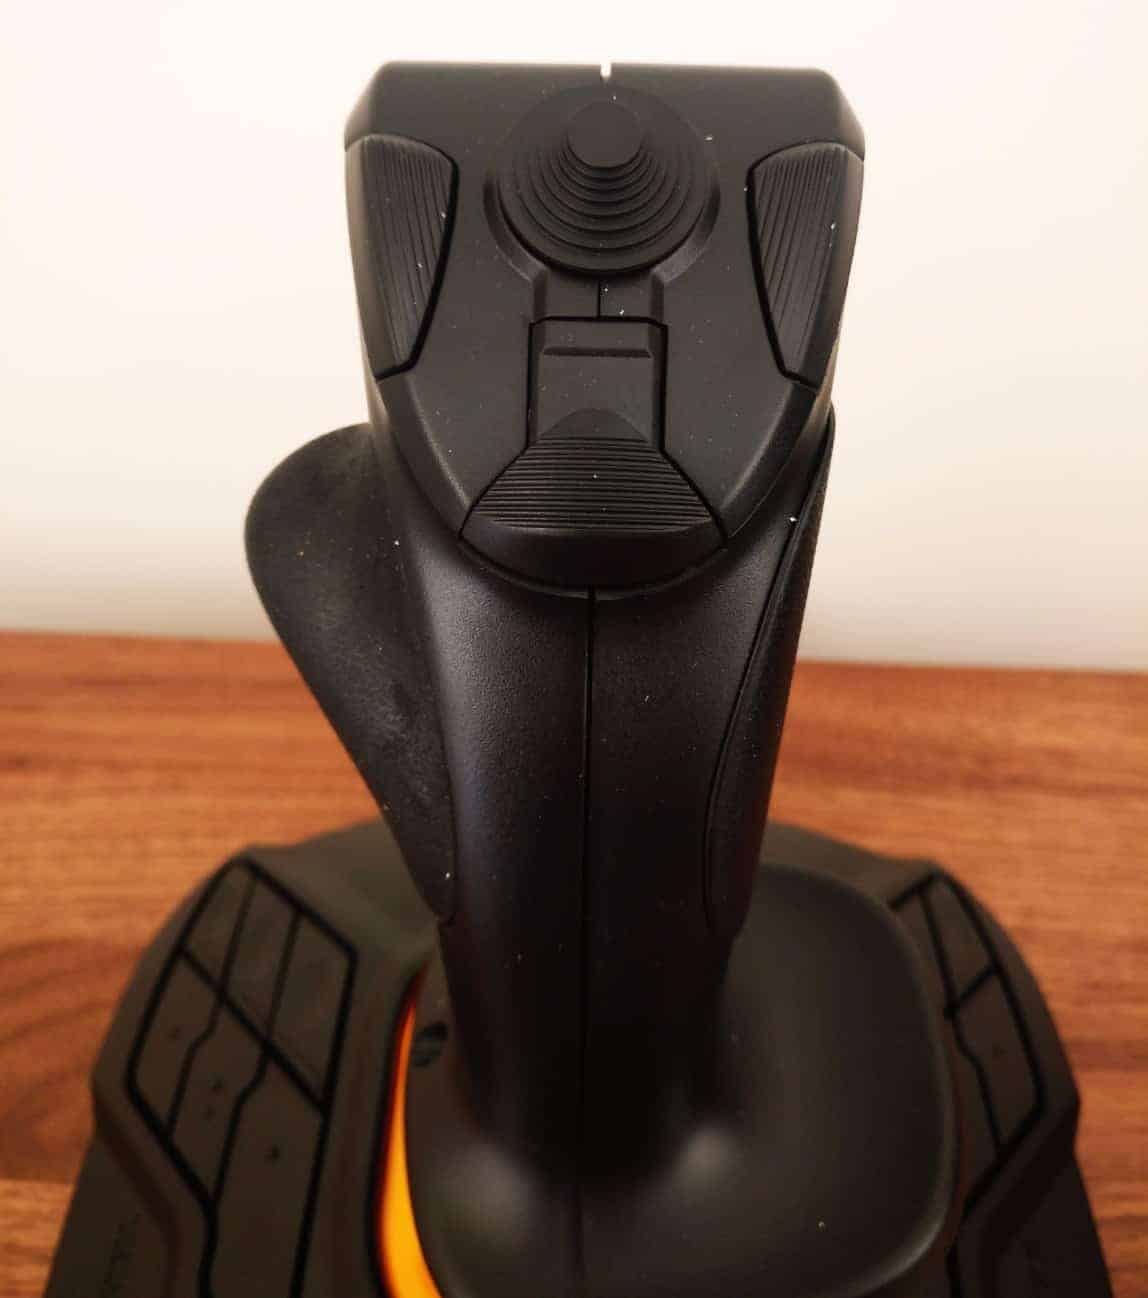 Thrustmaster-Flightstick-Photos19 Thrustmaster T.16000M FCS Hotas Joystick Review